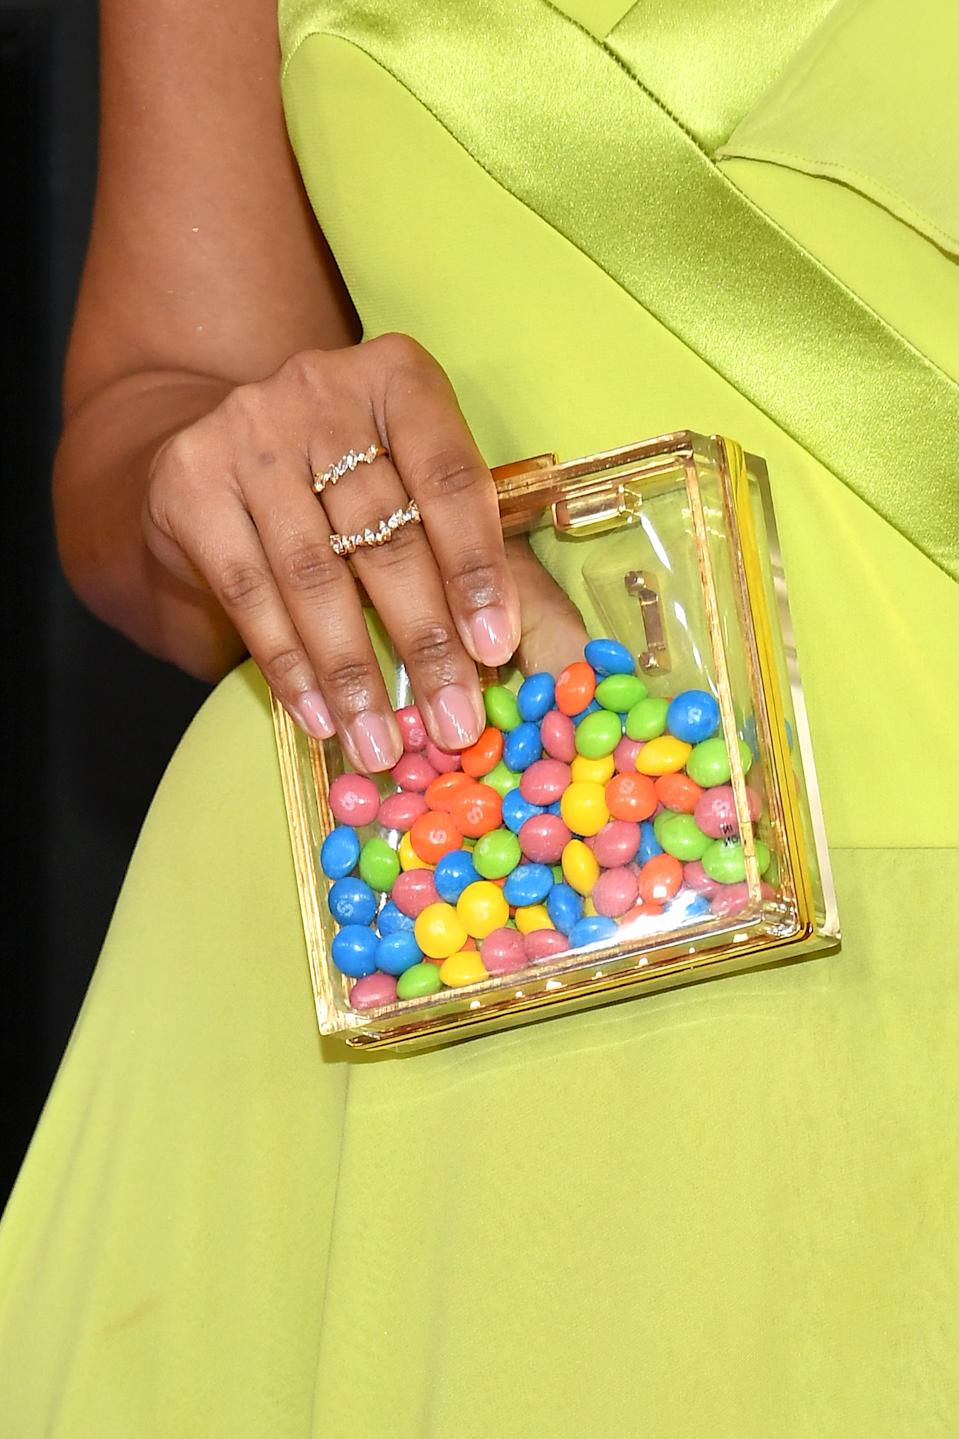 LOS ANGELES, CALIFORNIA - JANUARY 26: Lilly Singh, accessory detail, attends the 62nd Annual GRAMMY Awards at Staples Center on January 26, 2020 in Los Angeles, California. (Photo by Amy Sussman/Getty Images)